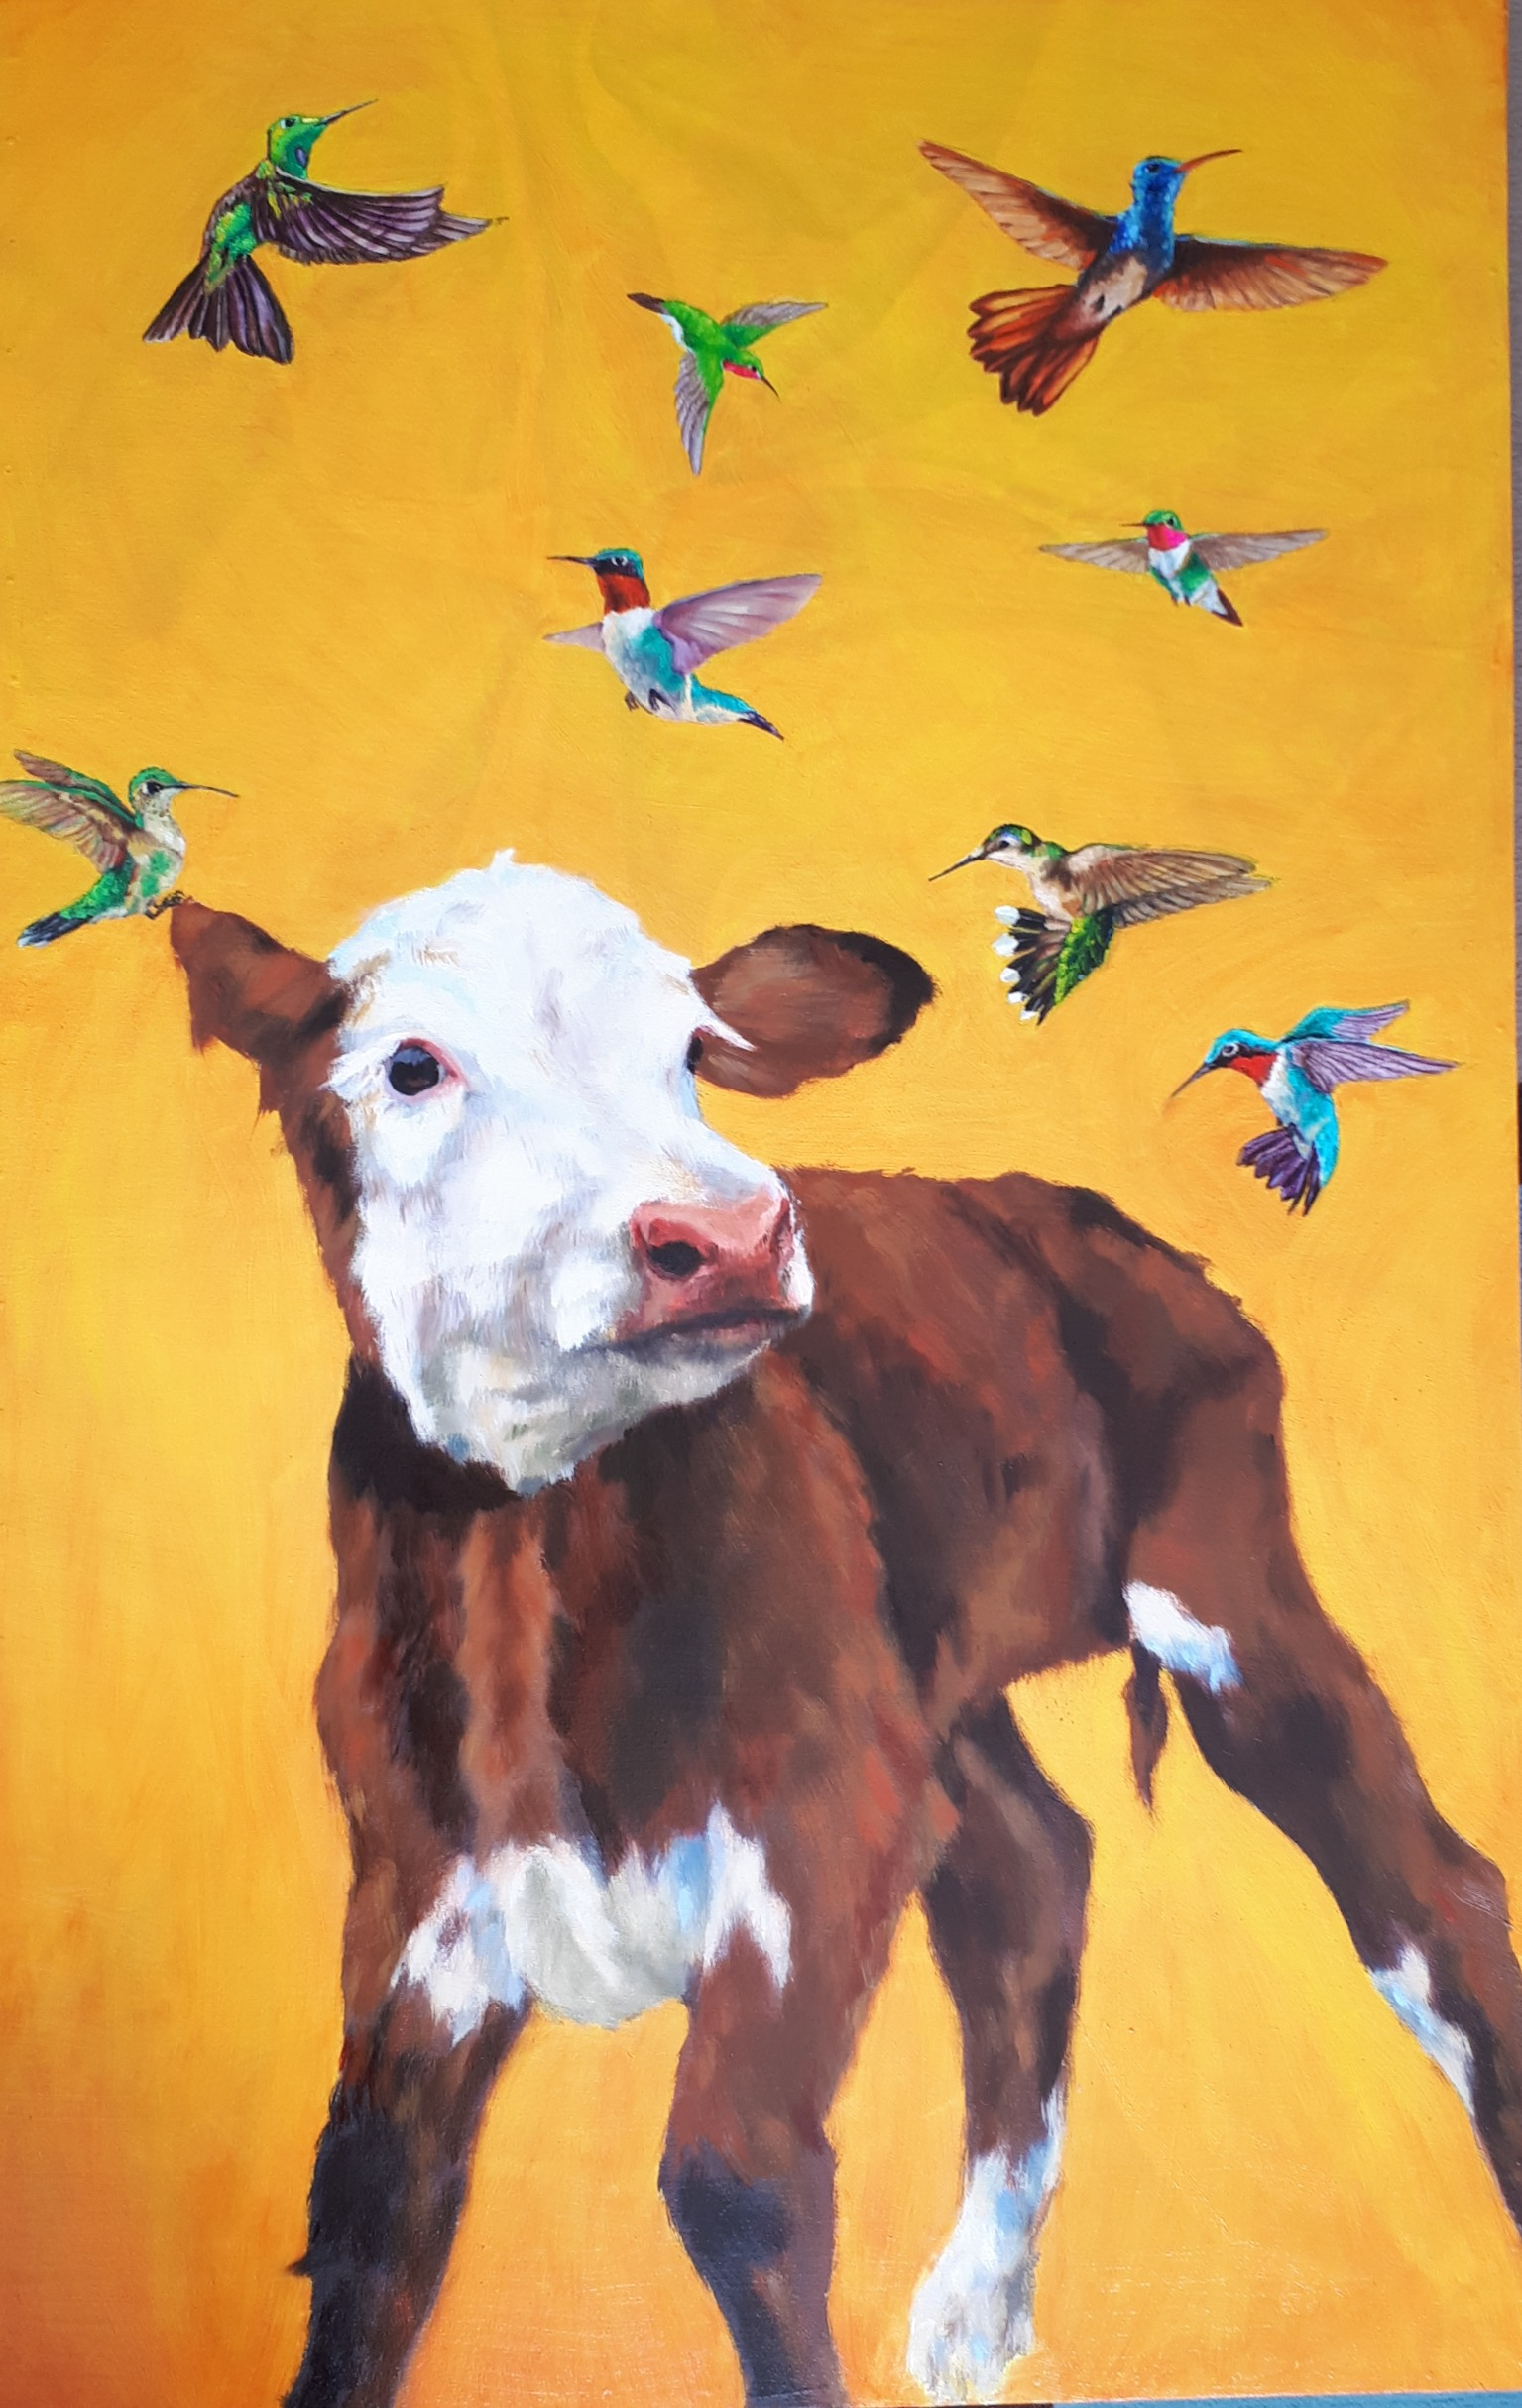 Calf with birds